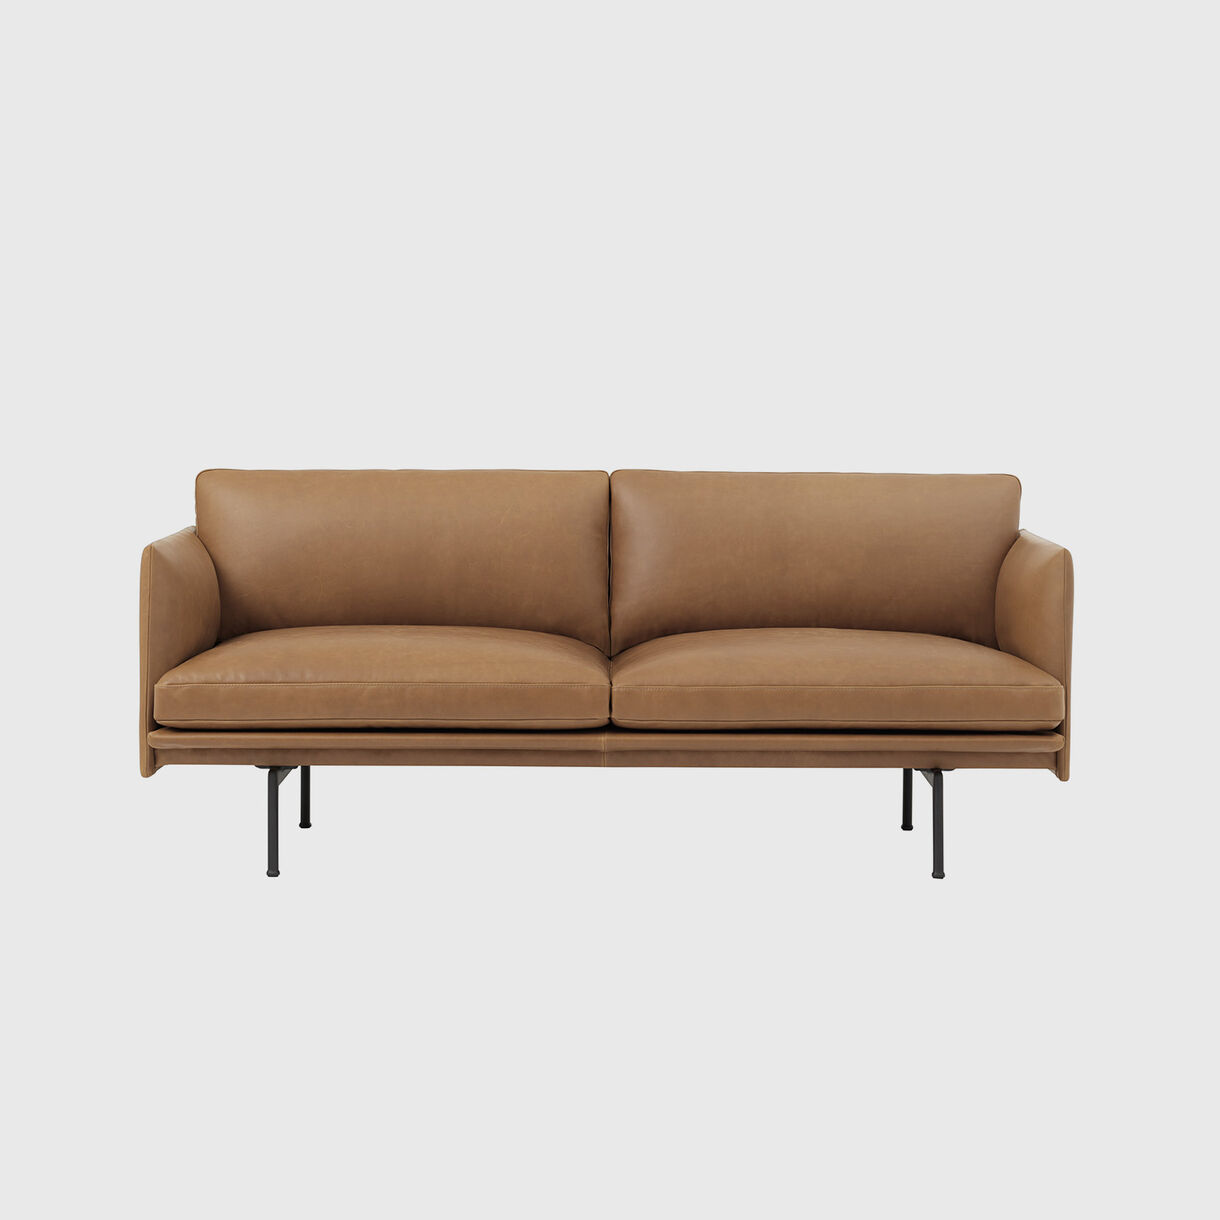 Outline 2 Seater Sofa, Cognac Leather